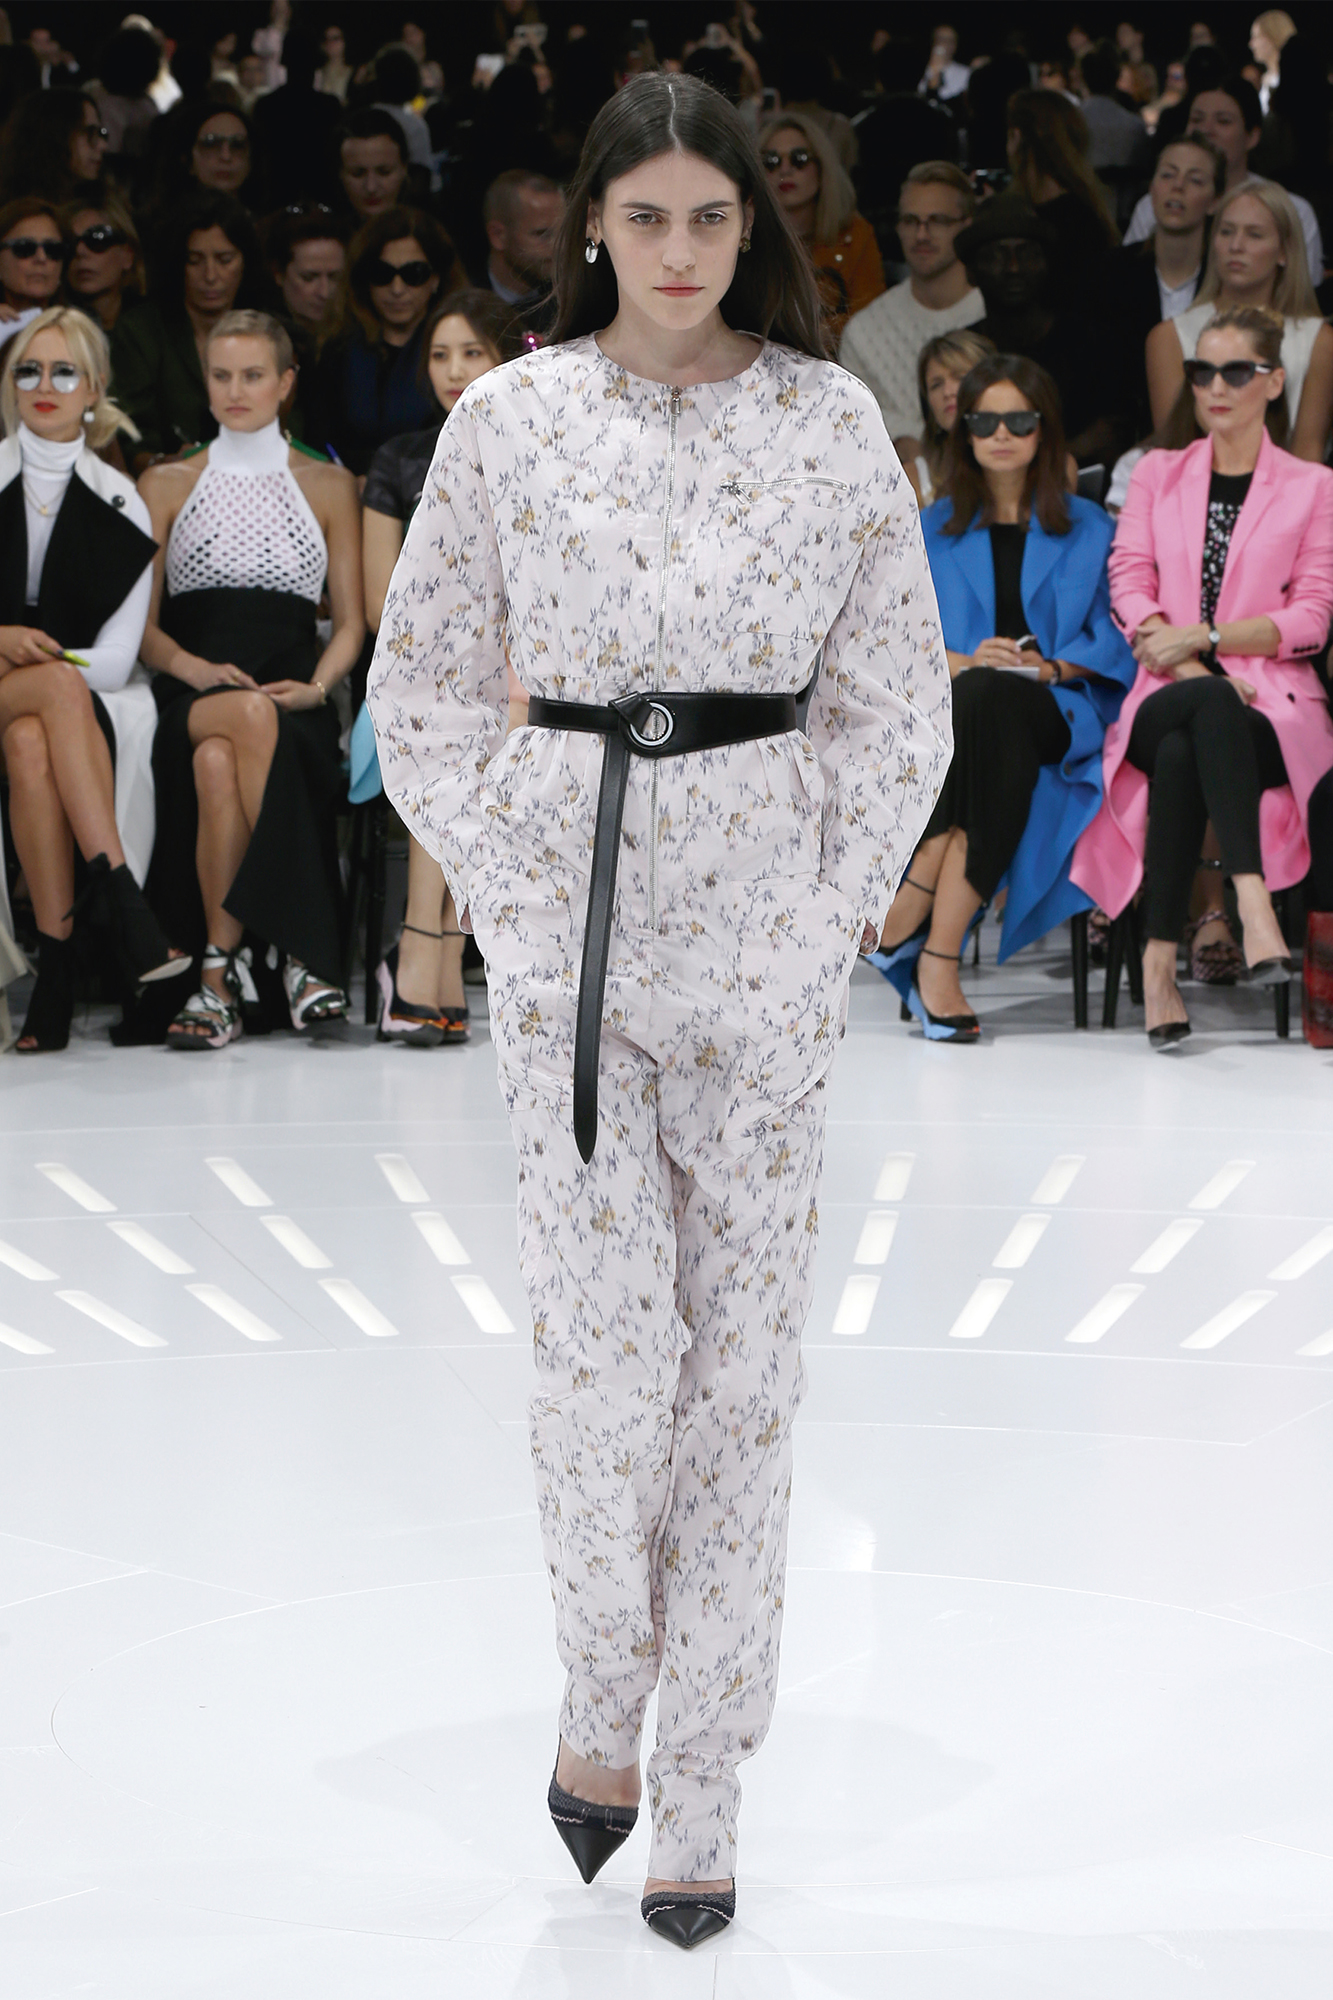 New Western Fashion Christian Dior Ready To Wear Dresses Spring Summer Collection 2015 (18)